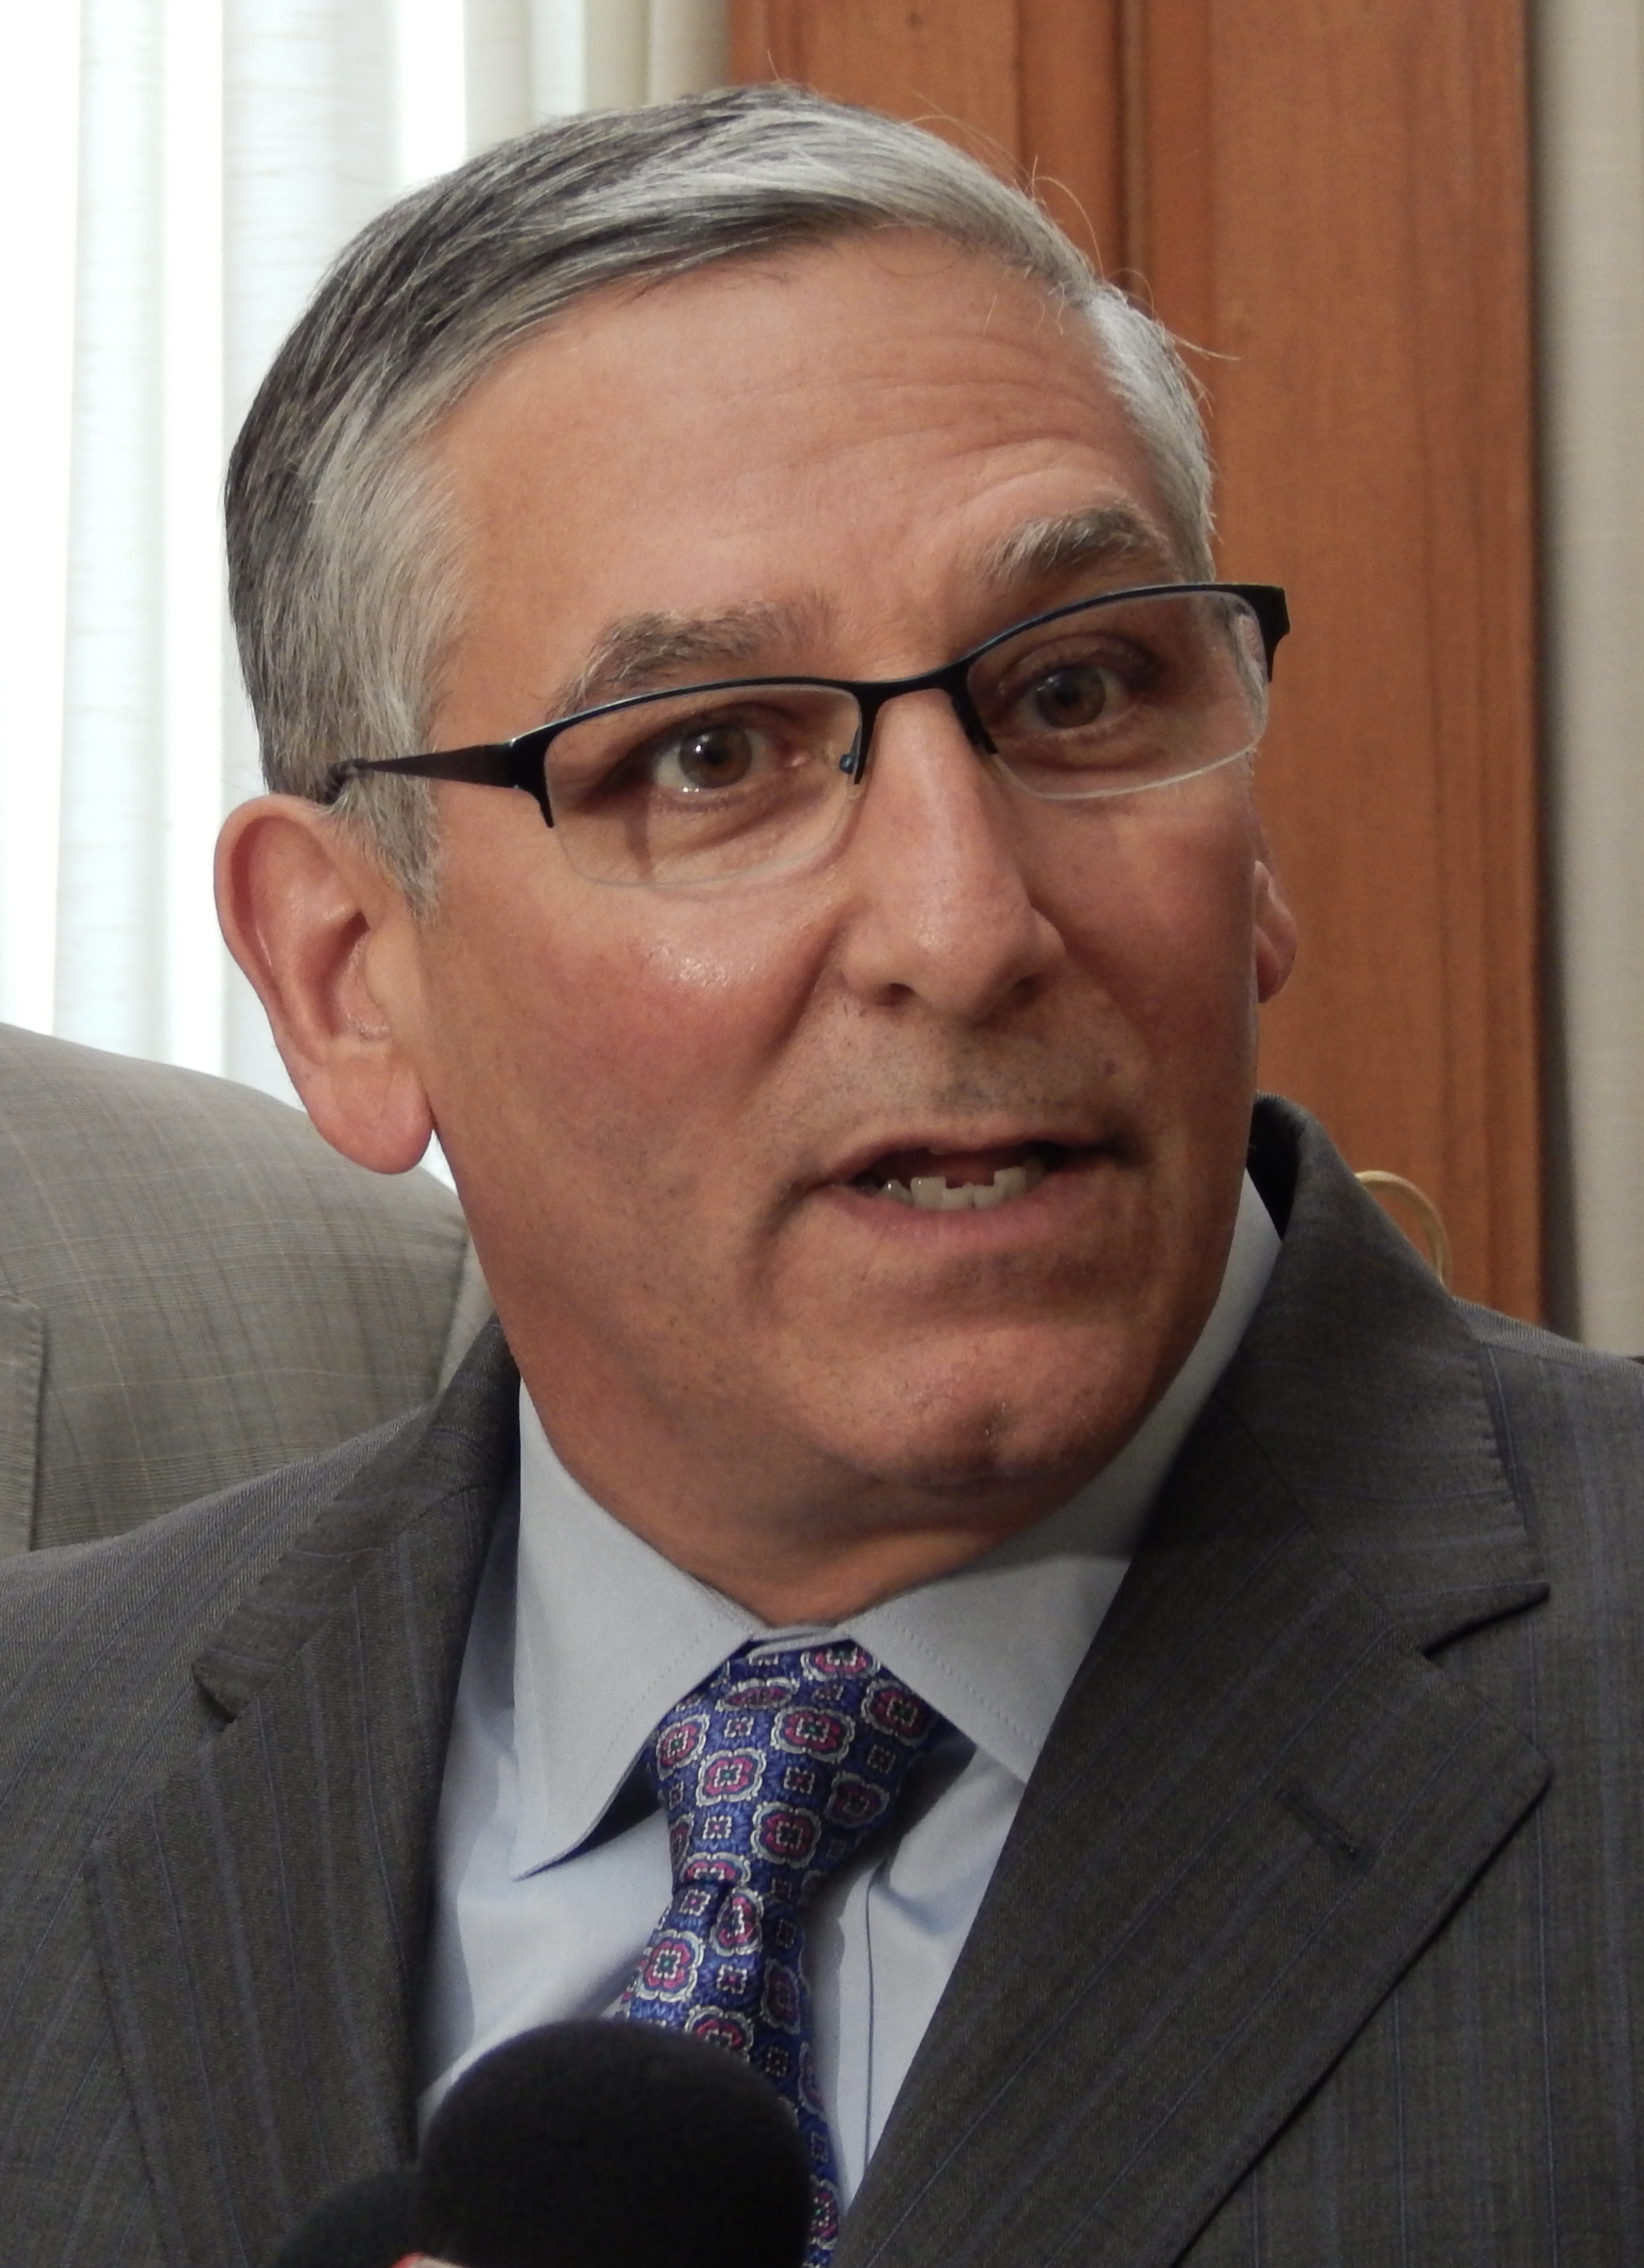 Fasano urges Malloy to release union wage concession agreements now